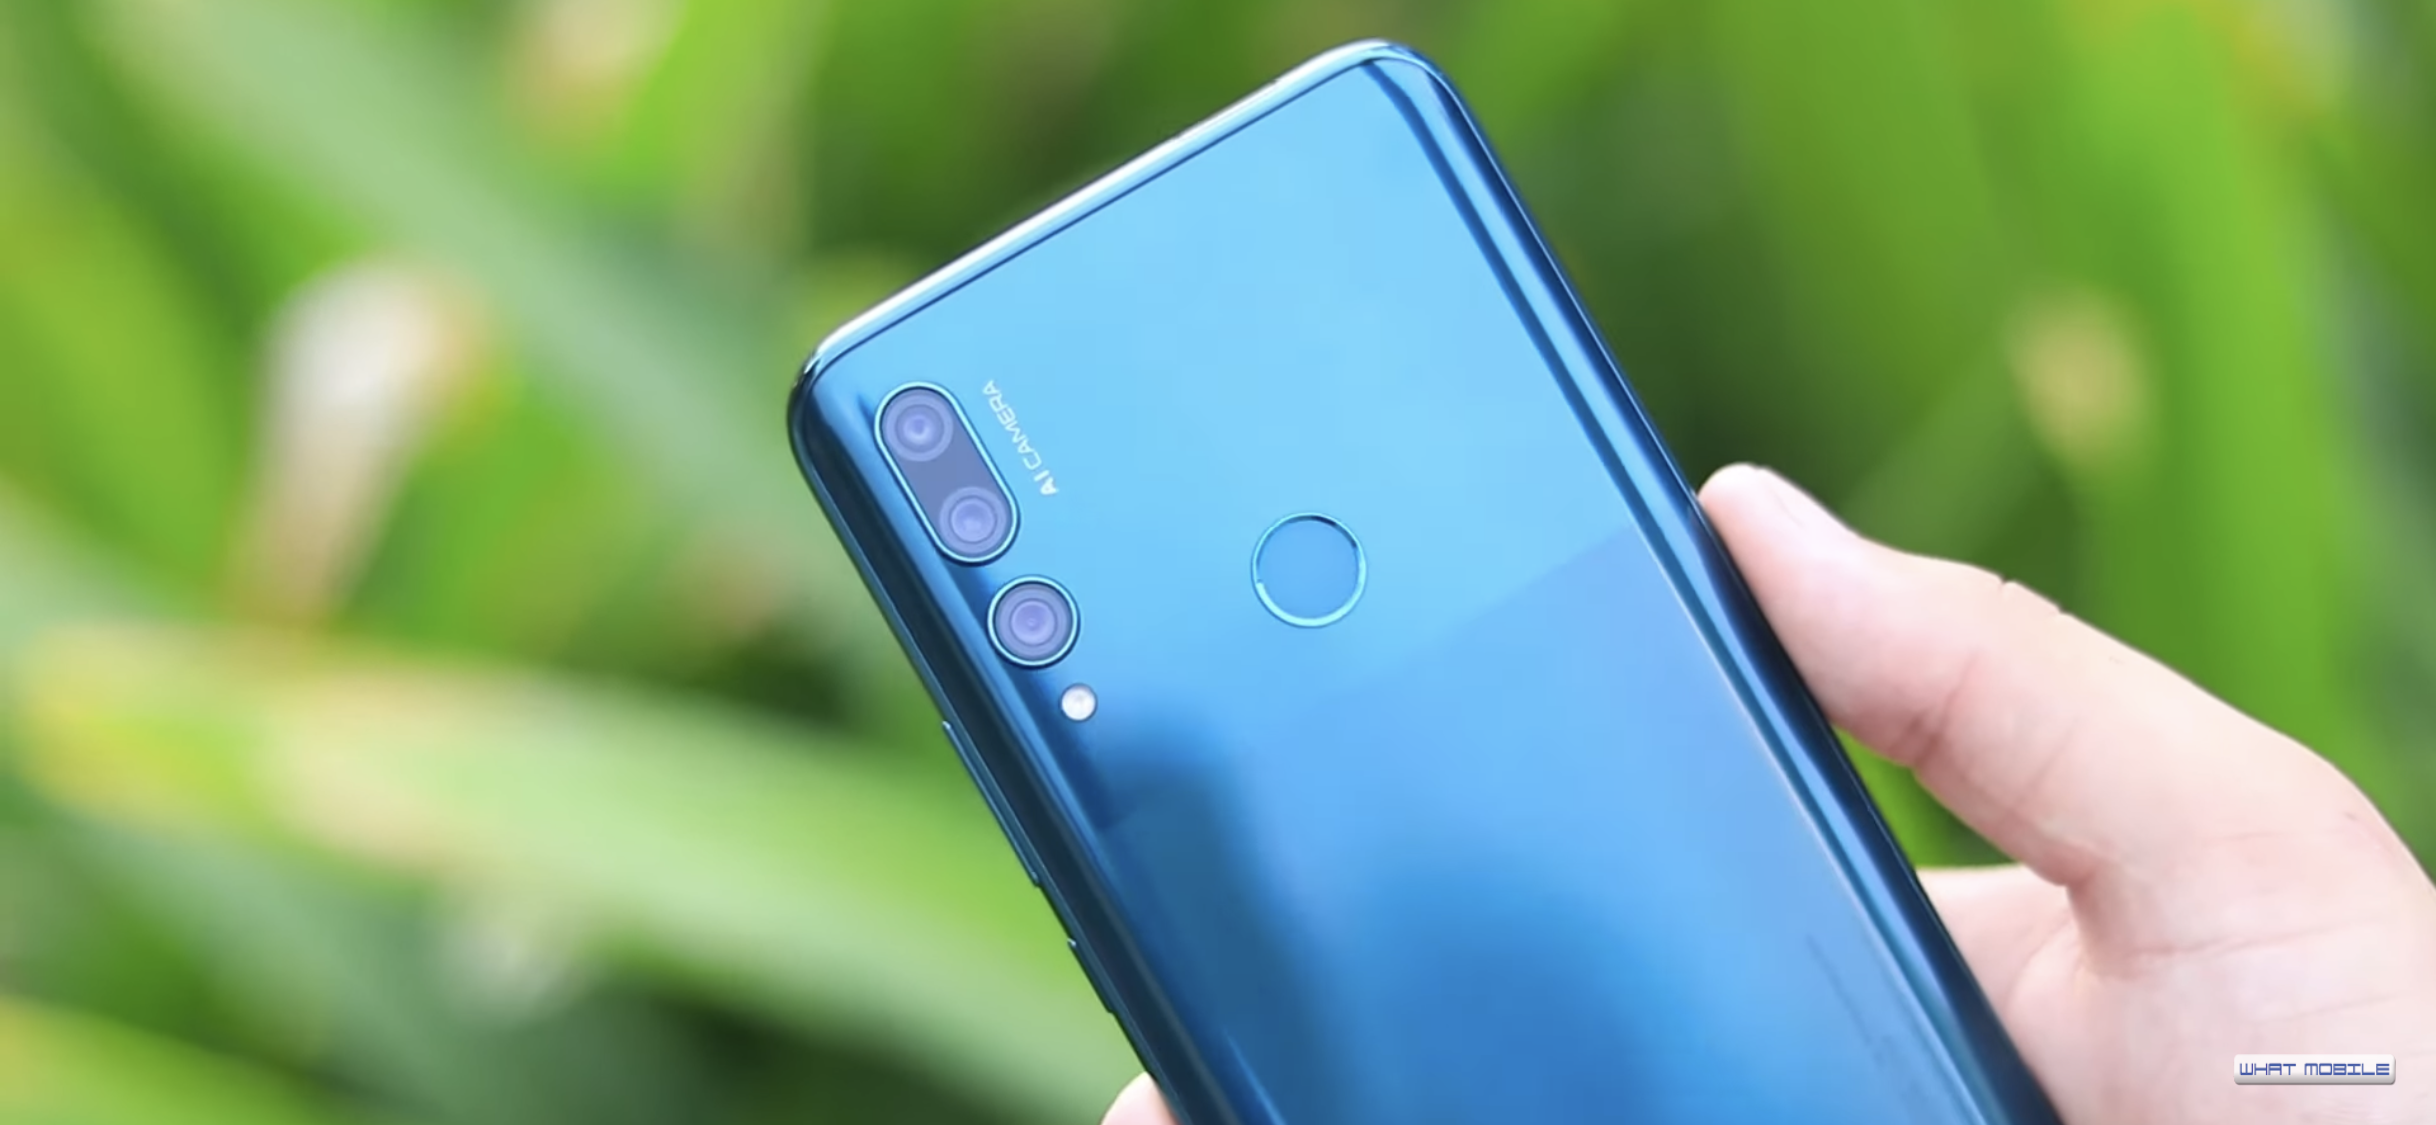 Huawei Y9 Prime (2019) Price in Pakistan and Specifications